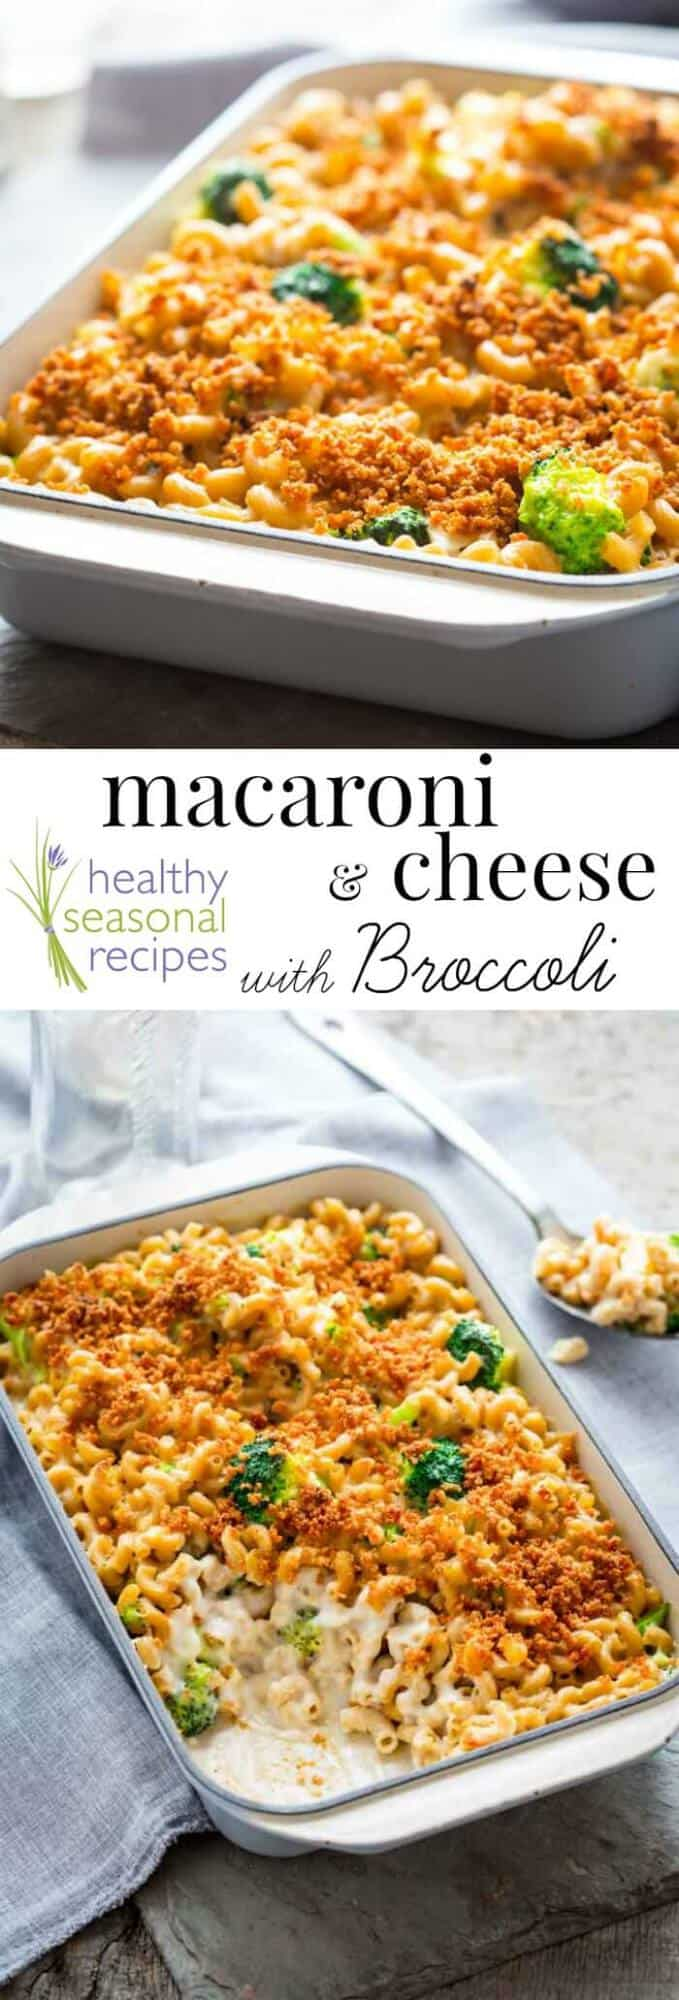 Macaroni and Cheese with Broccoli, made from scratch with cheesy white cheddar sauce, crunchy breadcrumbs, whole-grain pasta and broccoli. Healthy Seasonal Recipes by Katie Webster #comfortfood #kidfriendly #macandcheese #healthy #broccoli #pasta